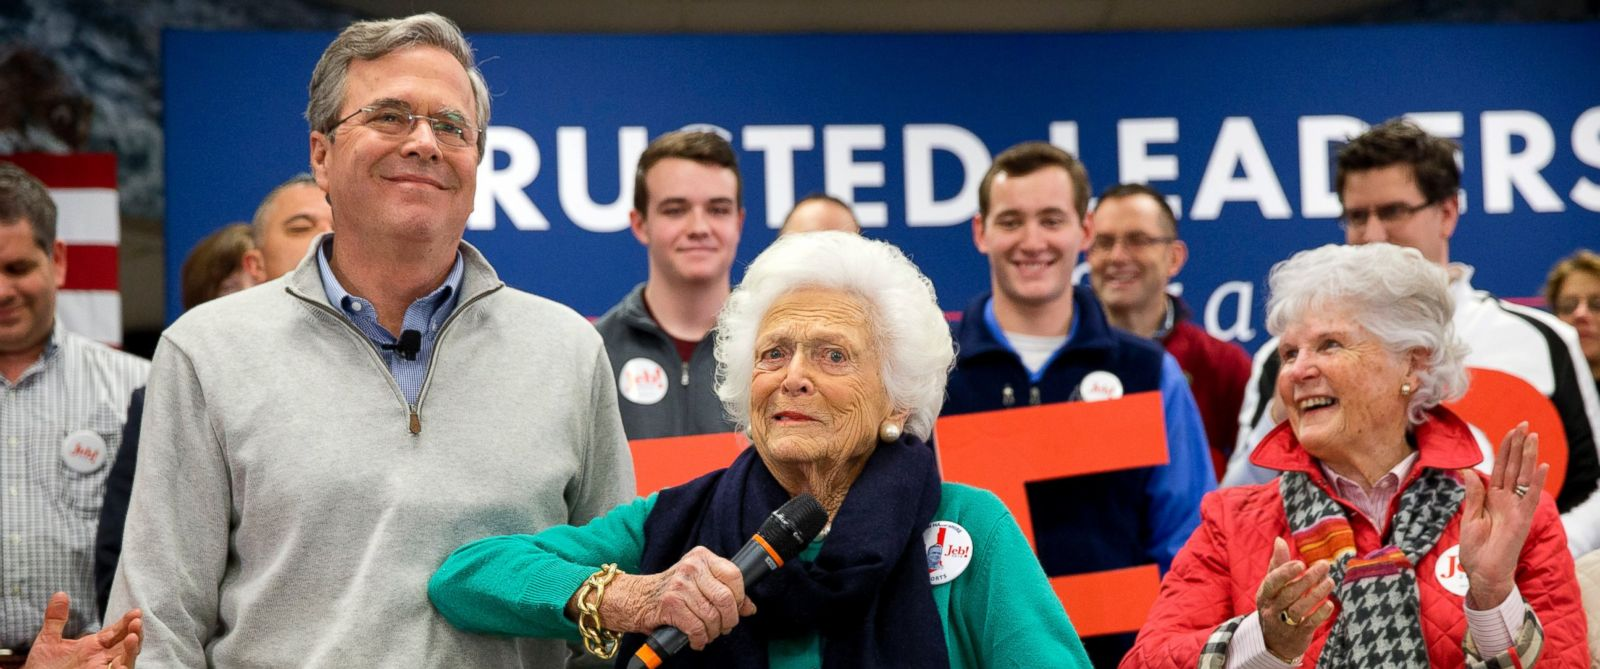 PHOTO: Barbara Bush, center, jokes with her son, Republican presidential candidate, former Florida Gov. Jeb Bush, while introducing him at a town hall meeting at West Running Brook Middle School in Derry, N.H., Feb. 4, 2016.